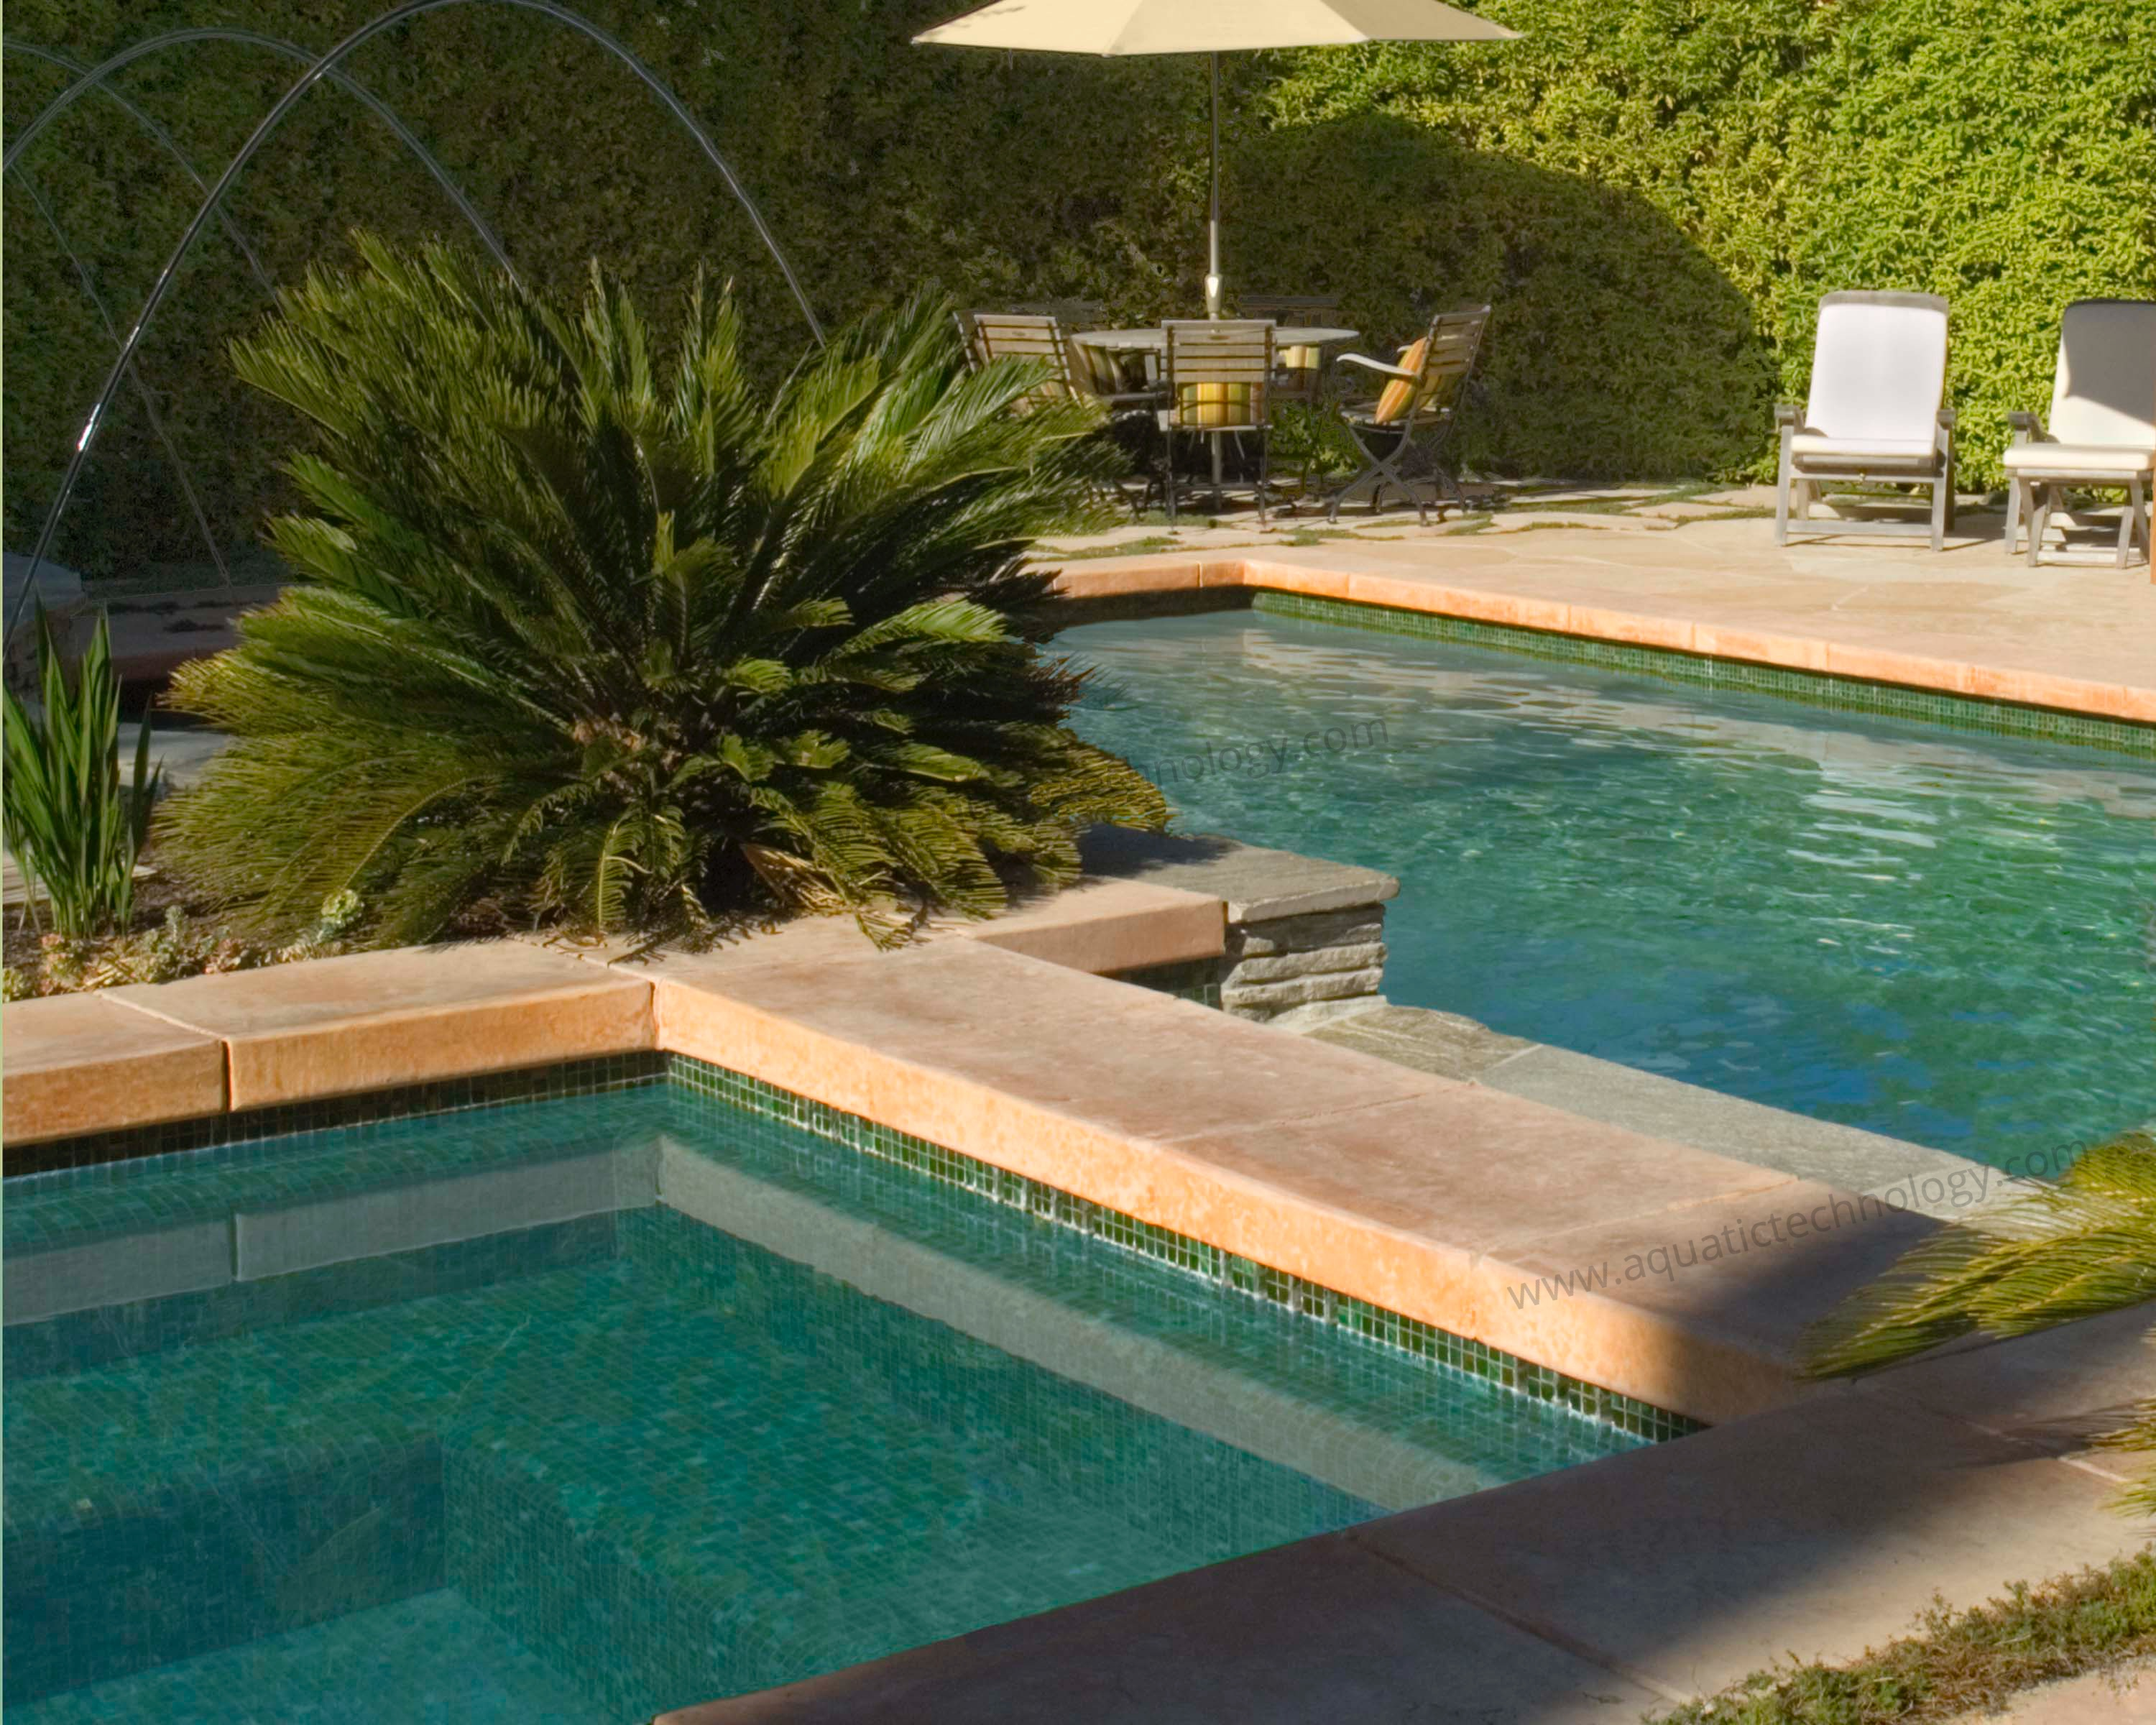 Bisazza L'Elba glass tile swimming pool spa